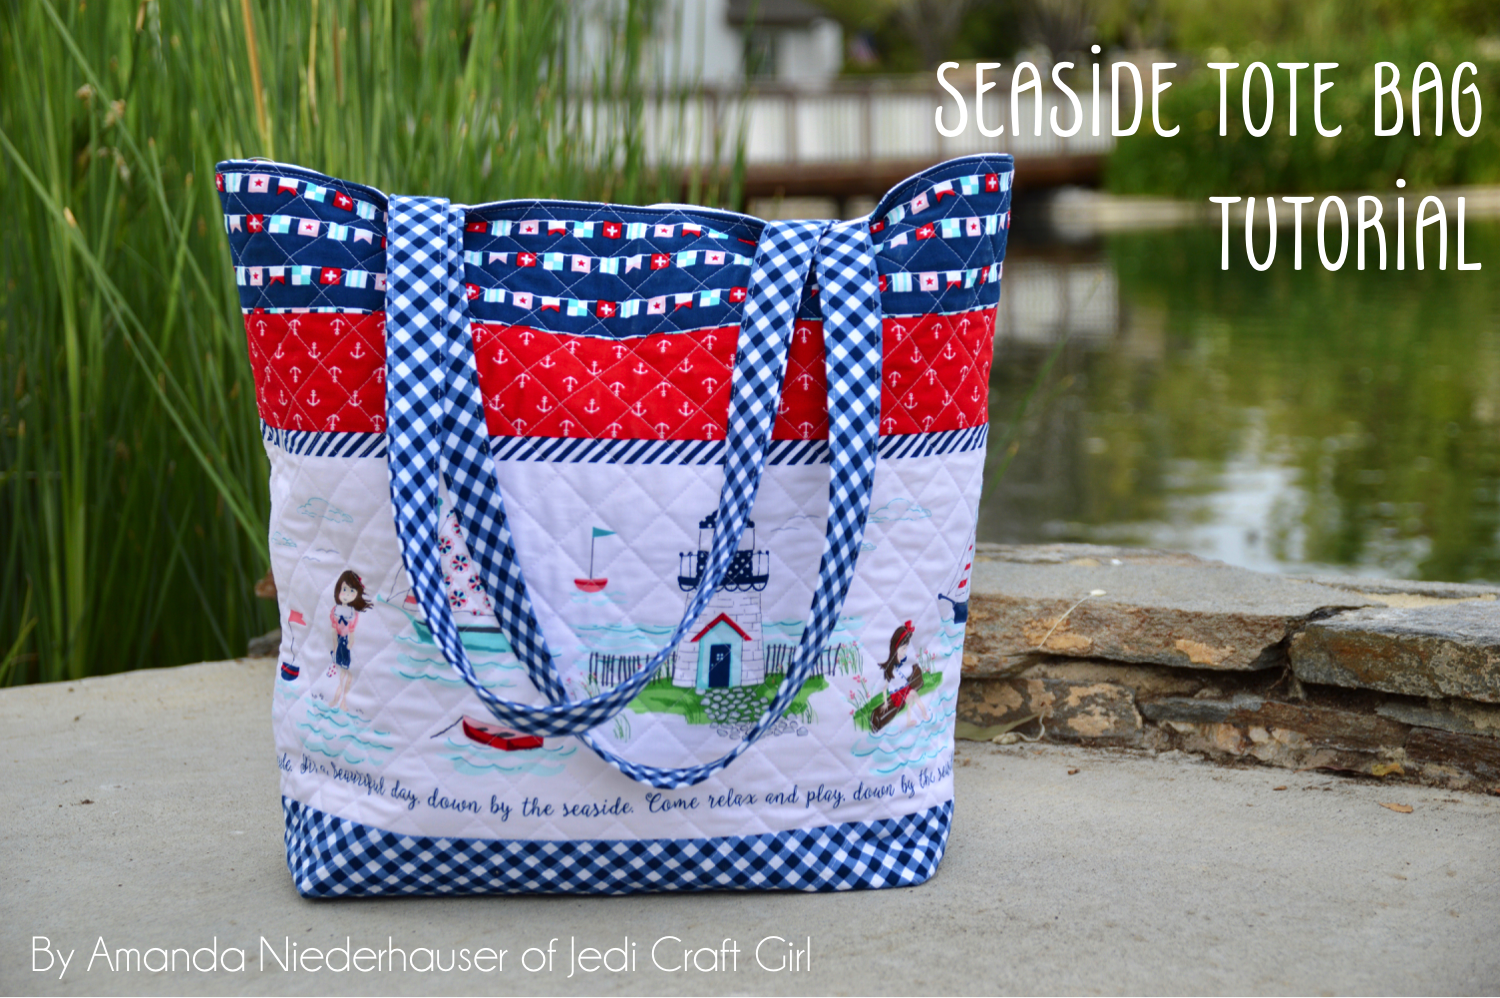 http://www.jedicraftgirl.com/wp-content/uploads/2018/05/seaside-tote-bag-tutorial.png